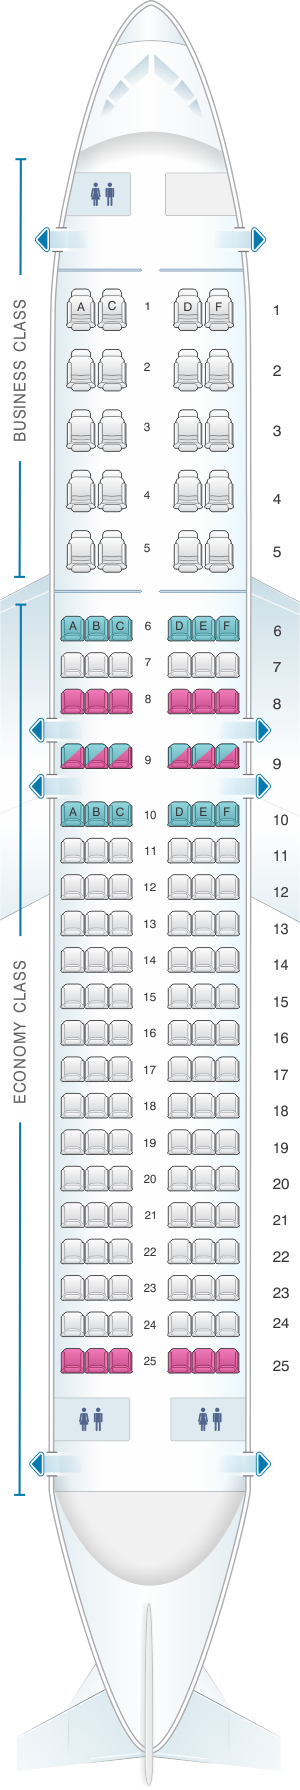 Seat map for Aeroflot Russian Airlines Airbus A320 200 Config.1